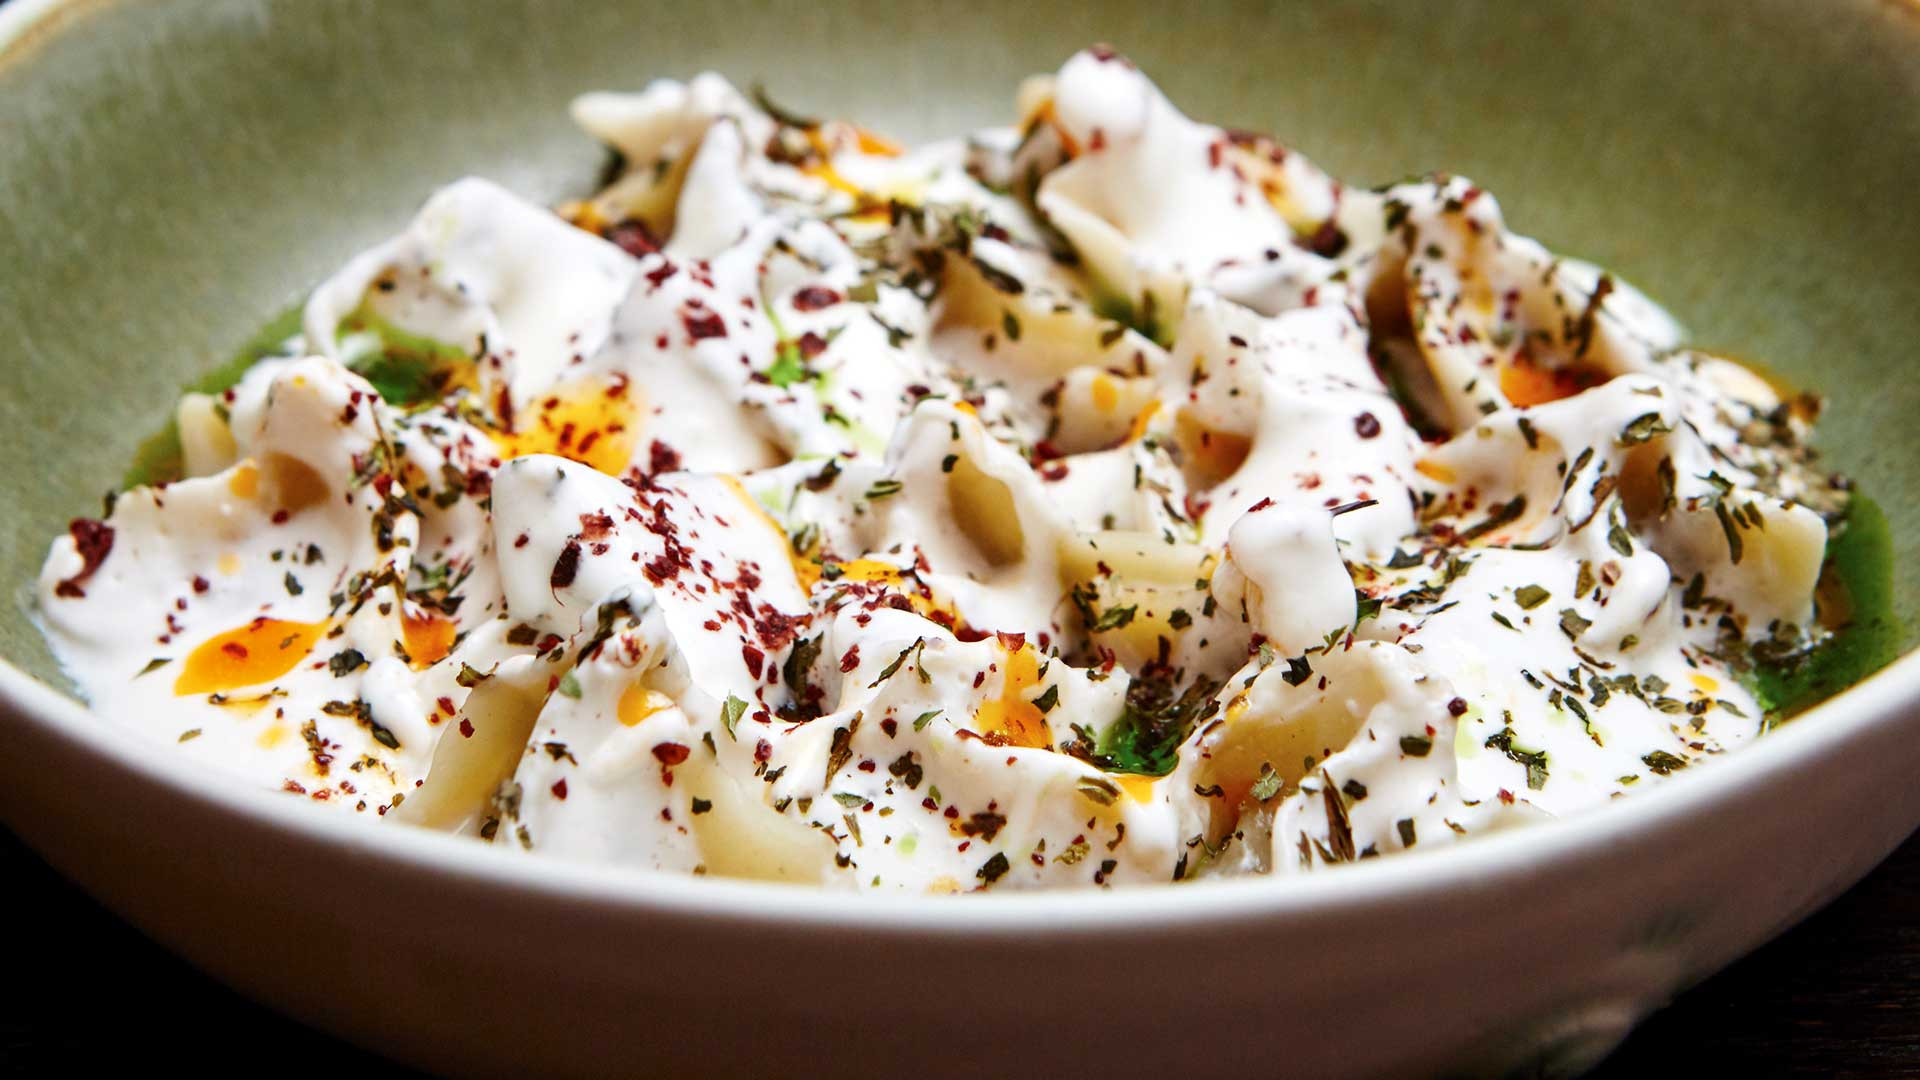 Turkish manti with a twist at Yosma